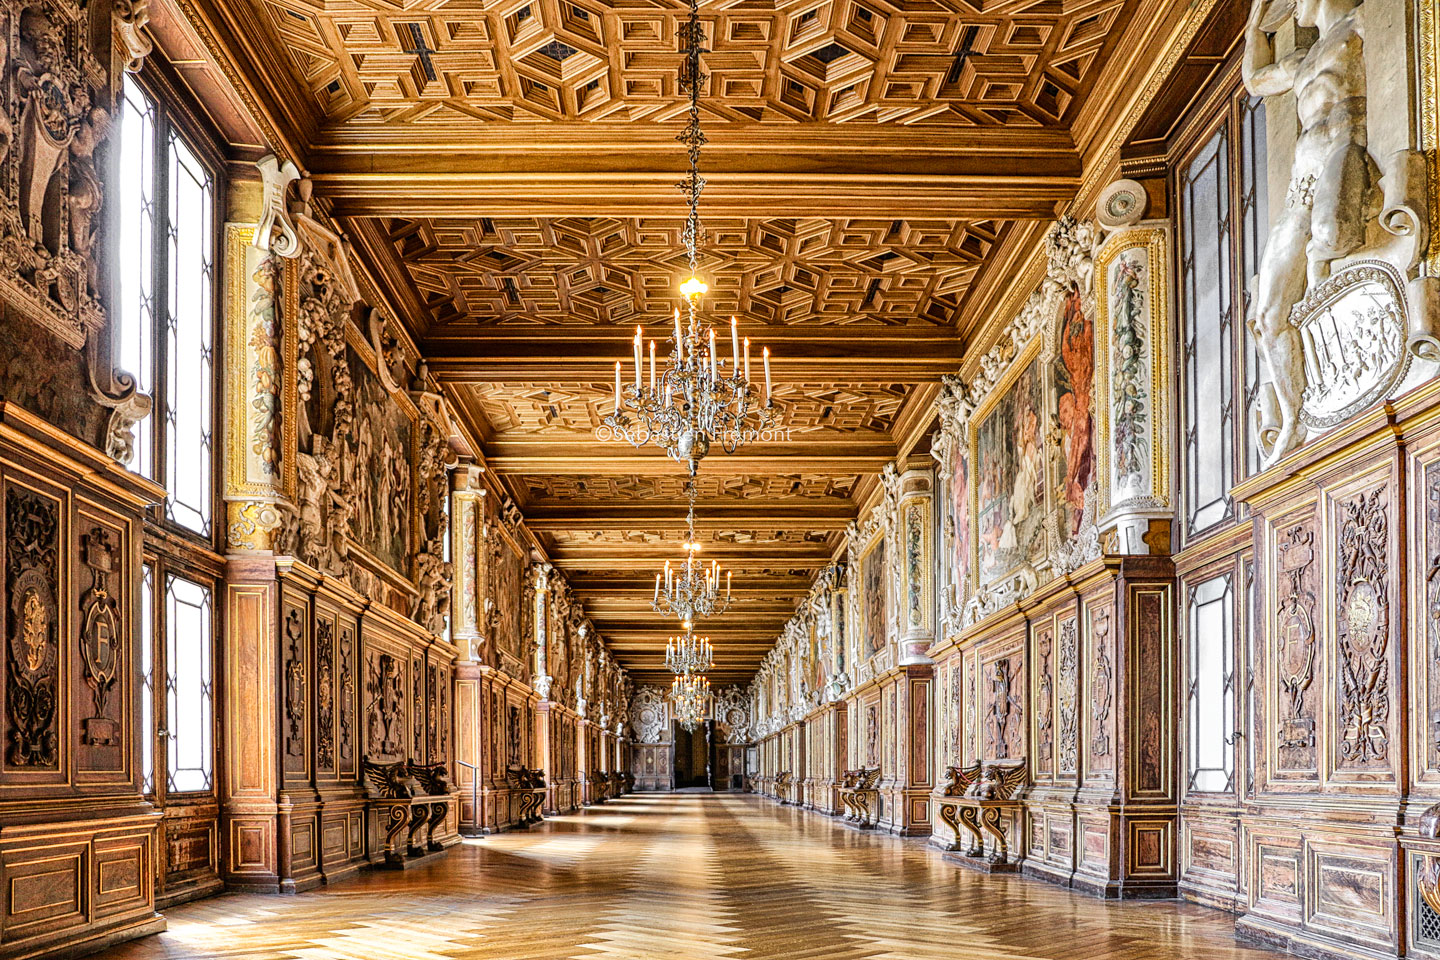 French Photographer Art Photography Palace of Fontainebleau / The Francis I Gallery